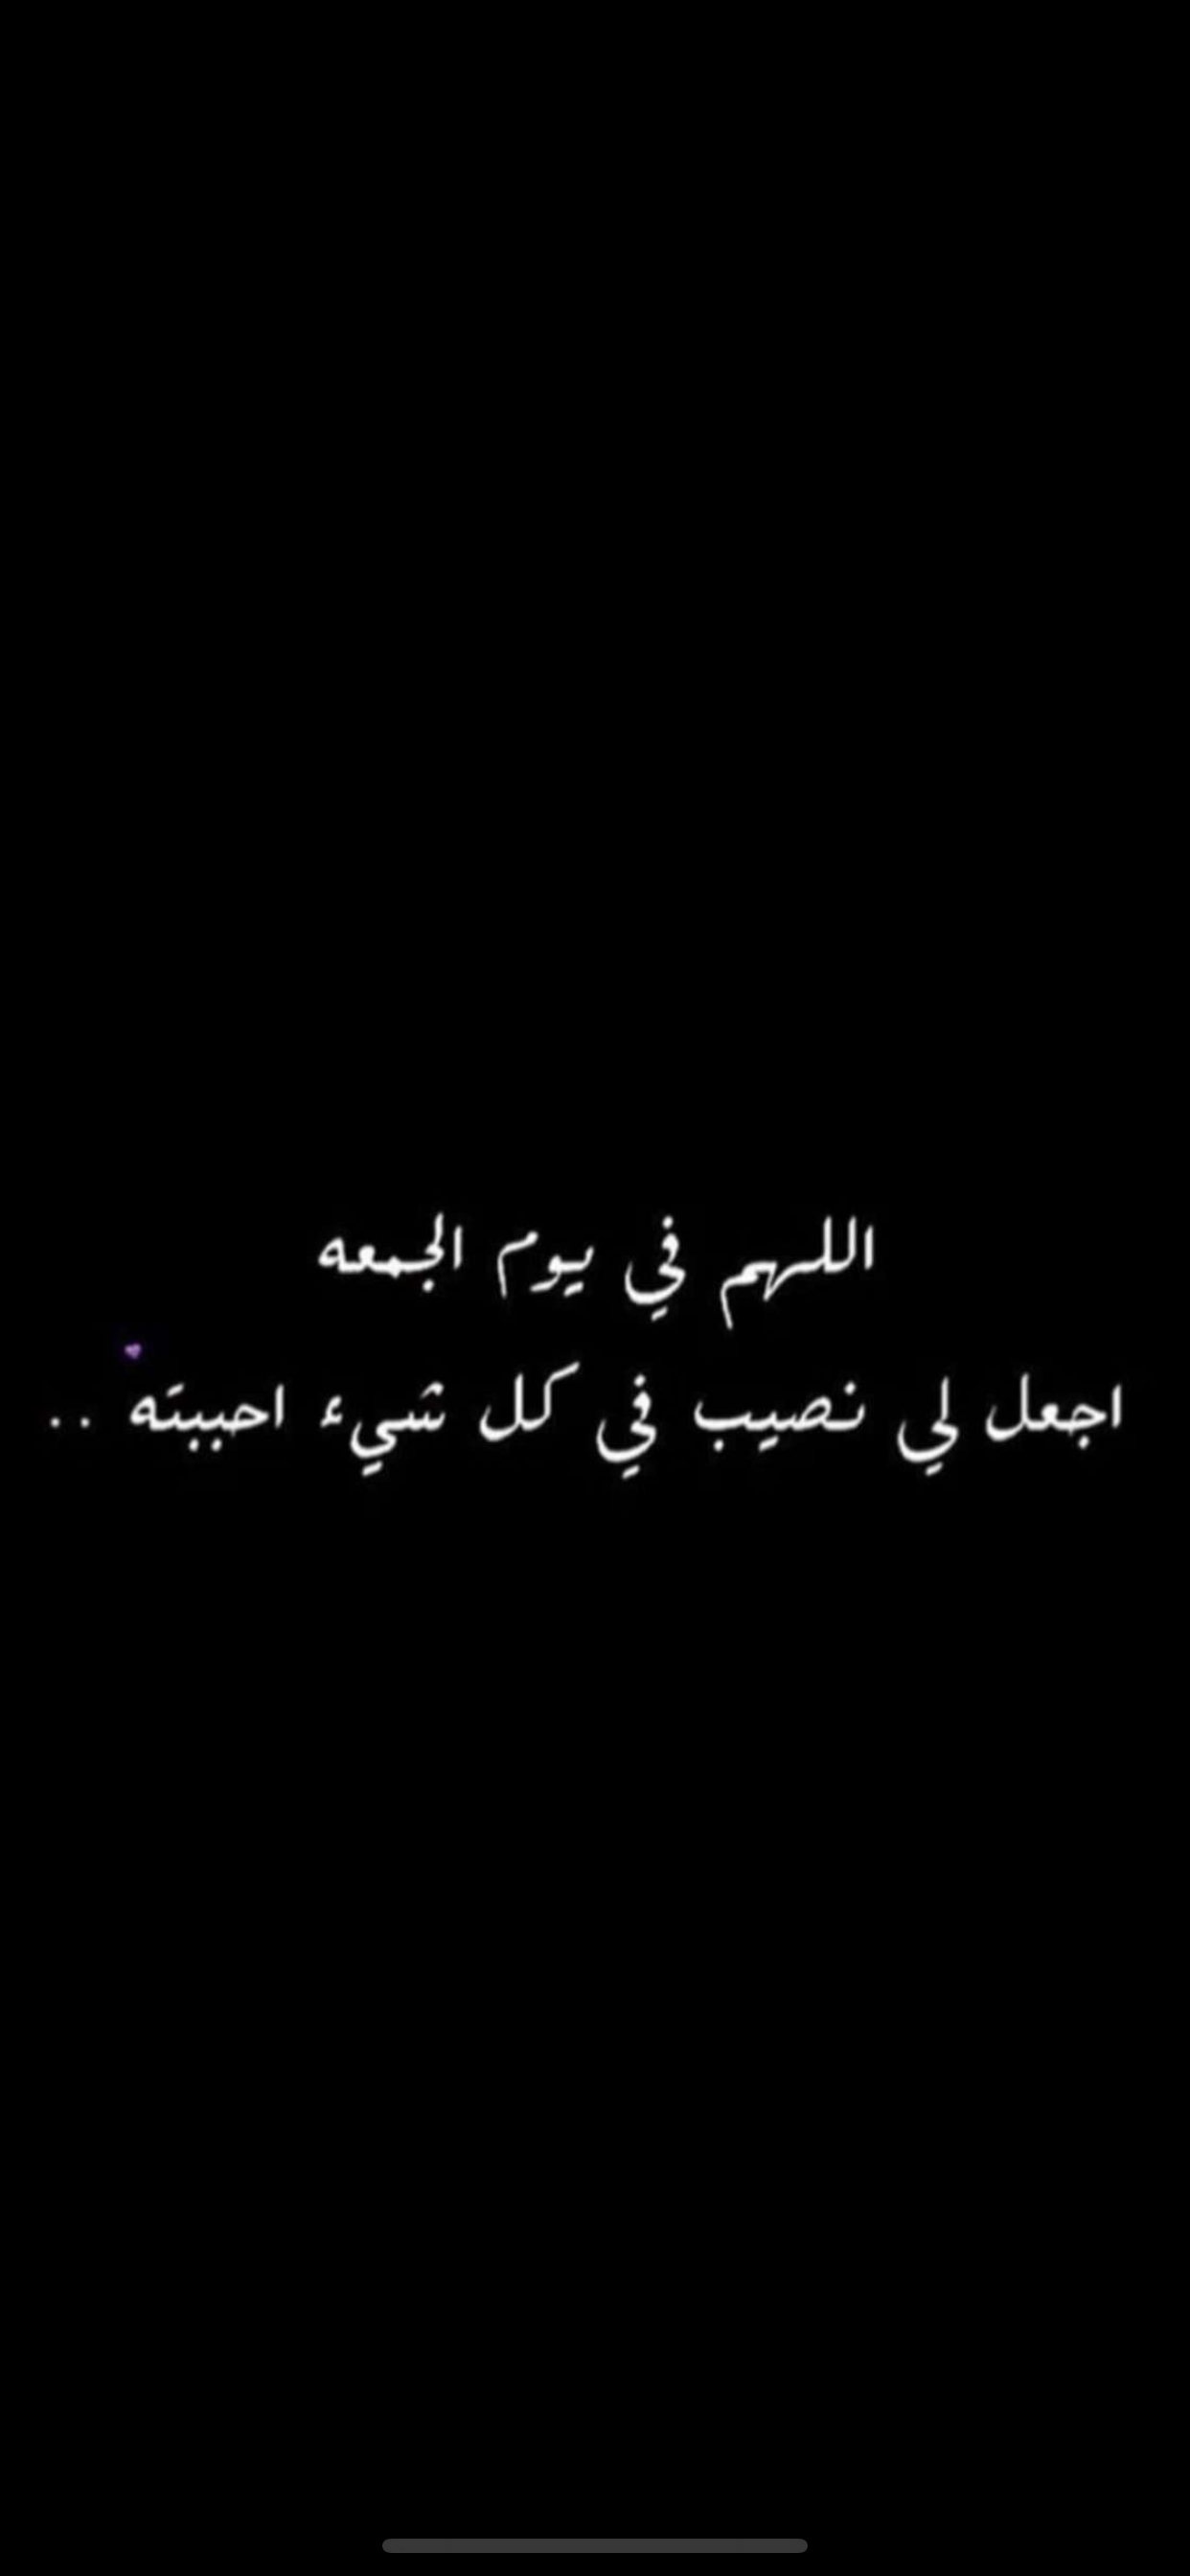 Pin By Rody On يوم الجمعه Beautiful Arabic Words Arabic Funny Arabic Love Quotes